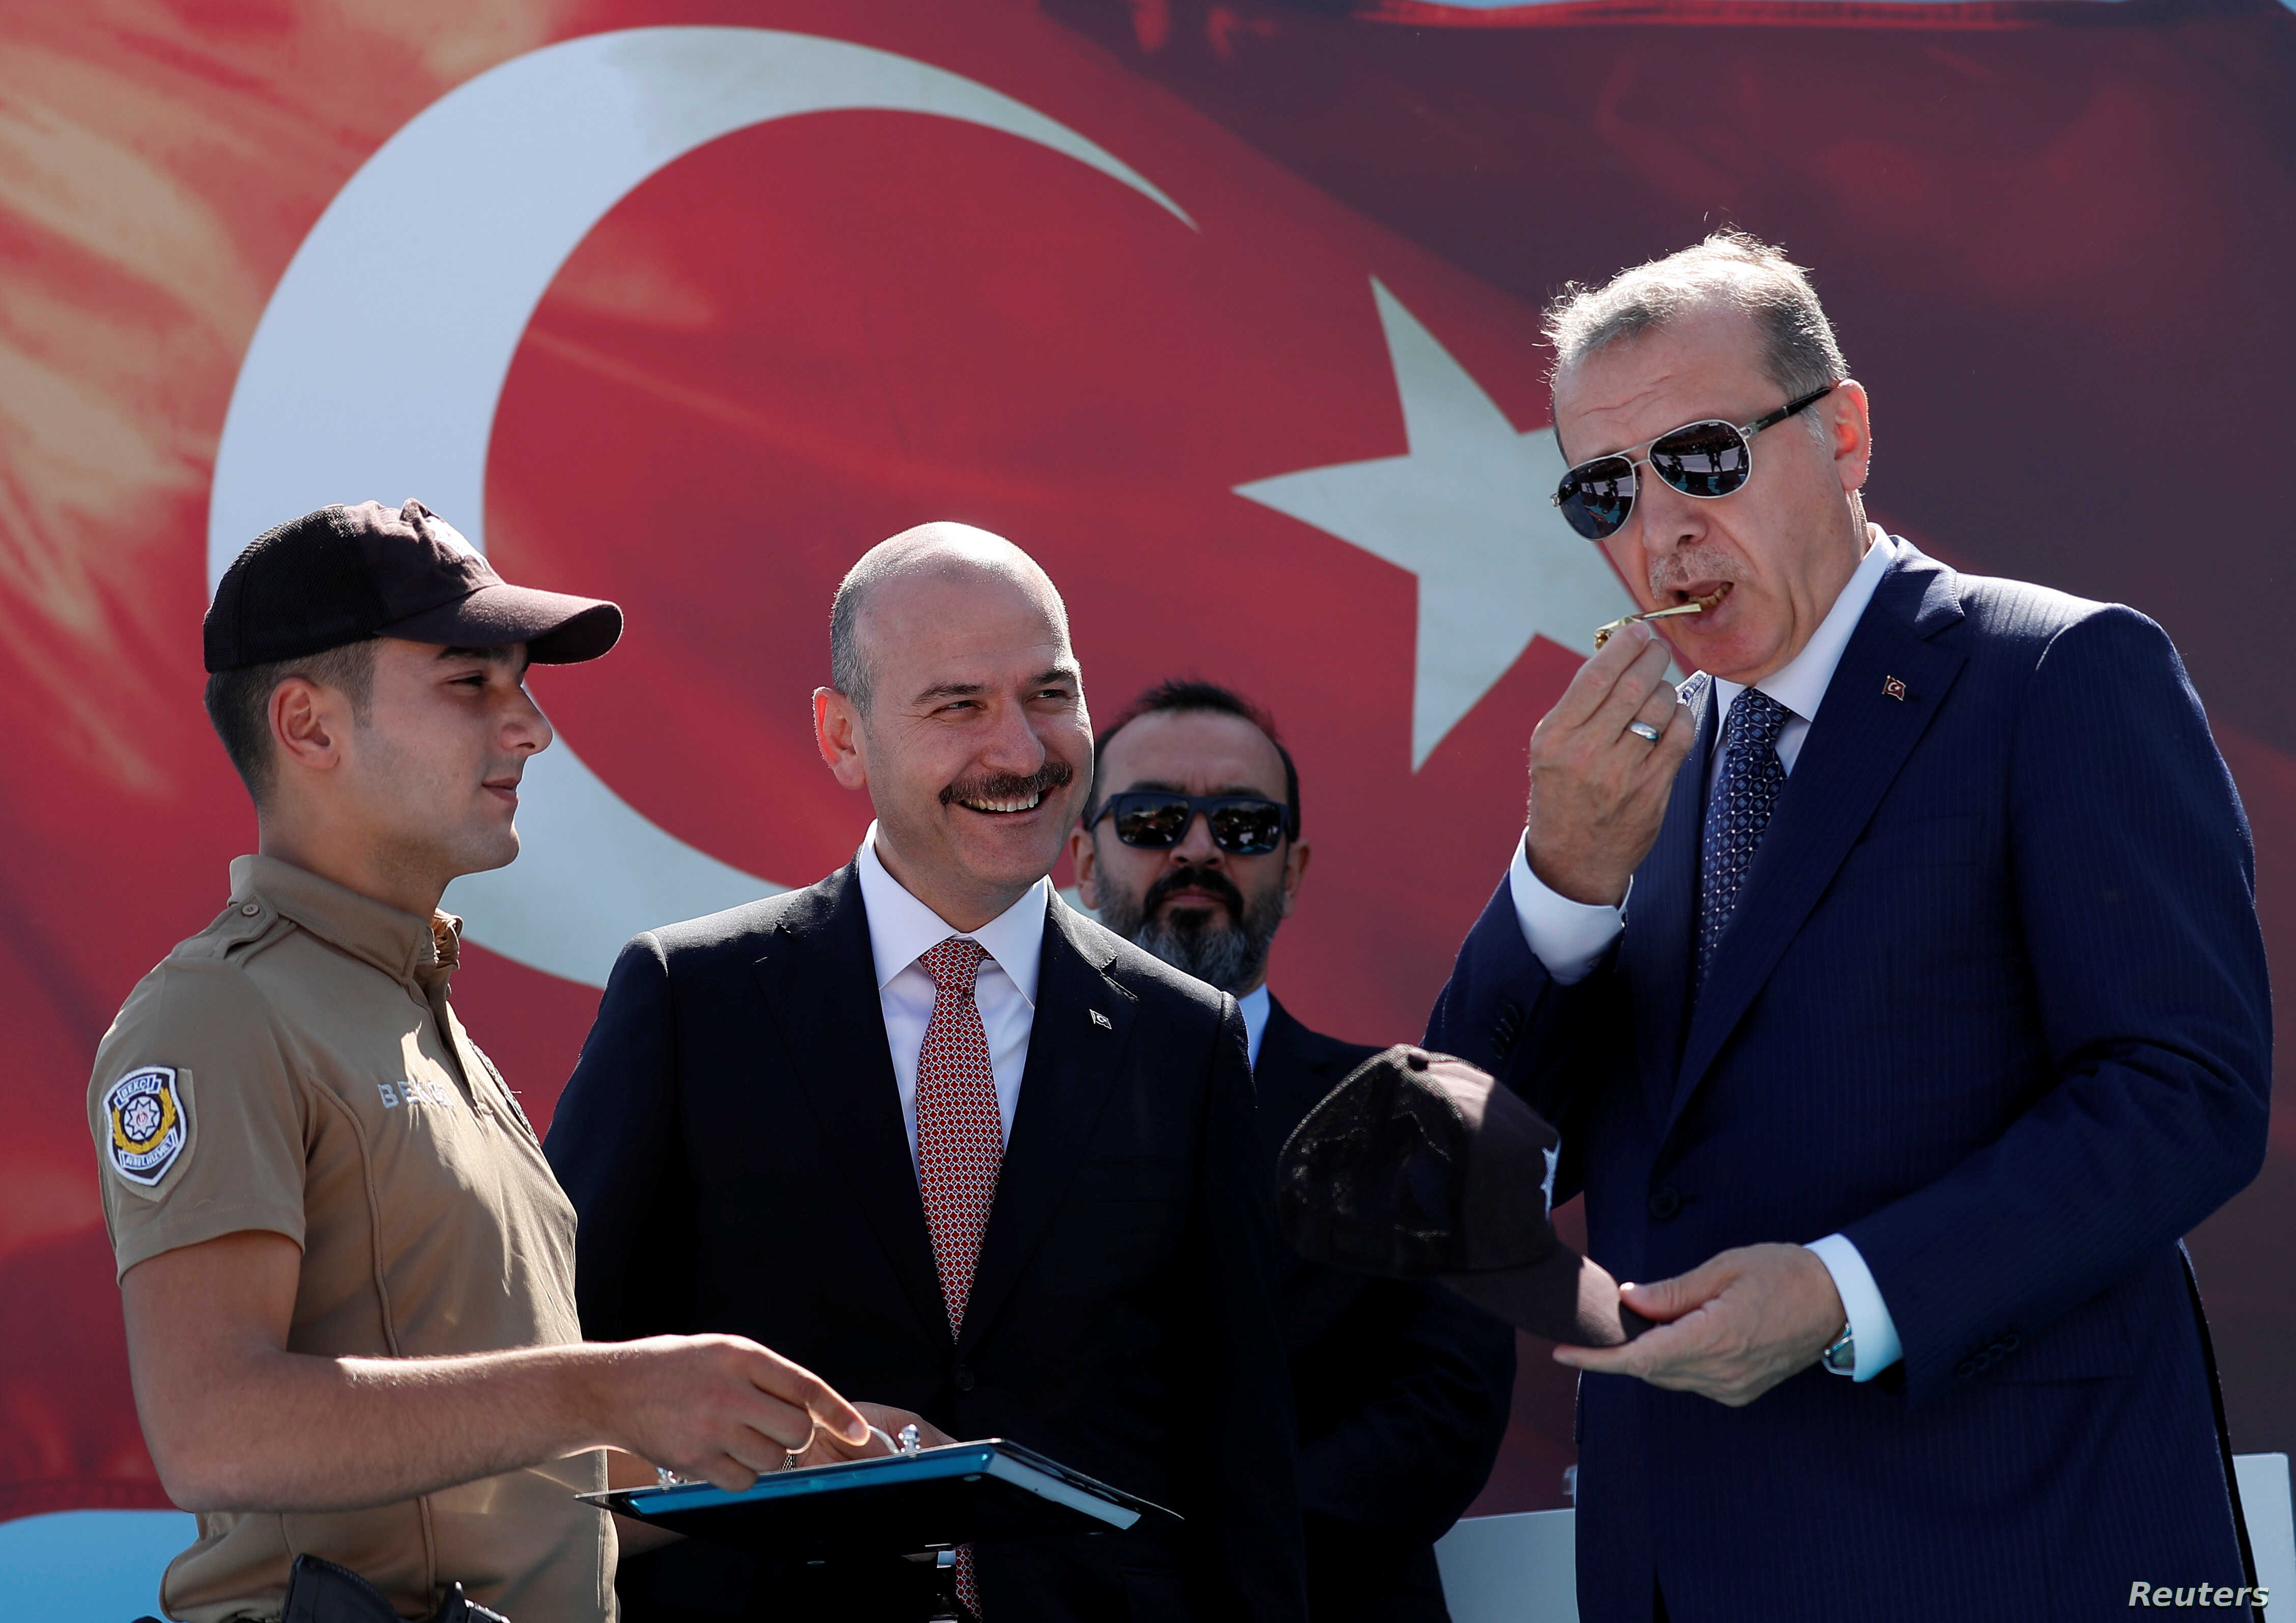 Turkish President Tayyip Erdogan, accompanied by Interior Minister Suleyman Soylu, blows a watchmen whistle during a ceremony in Istanbul, Aug. 25, 2017.